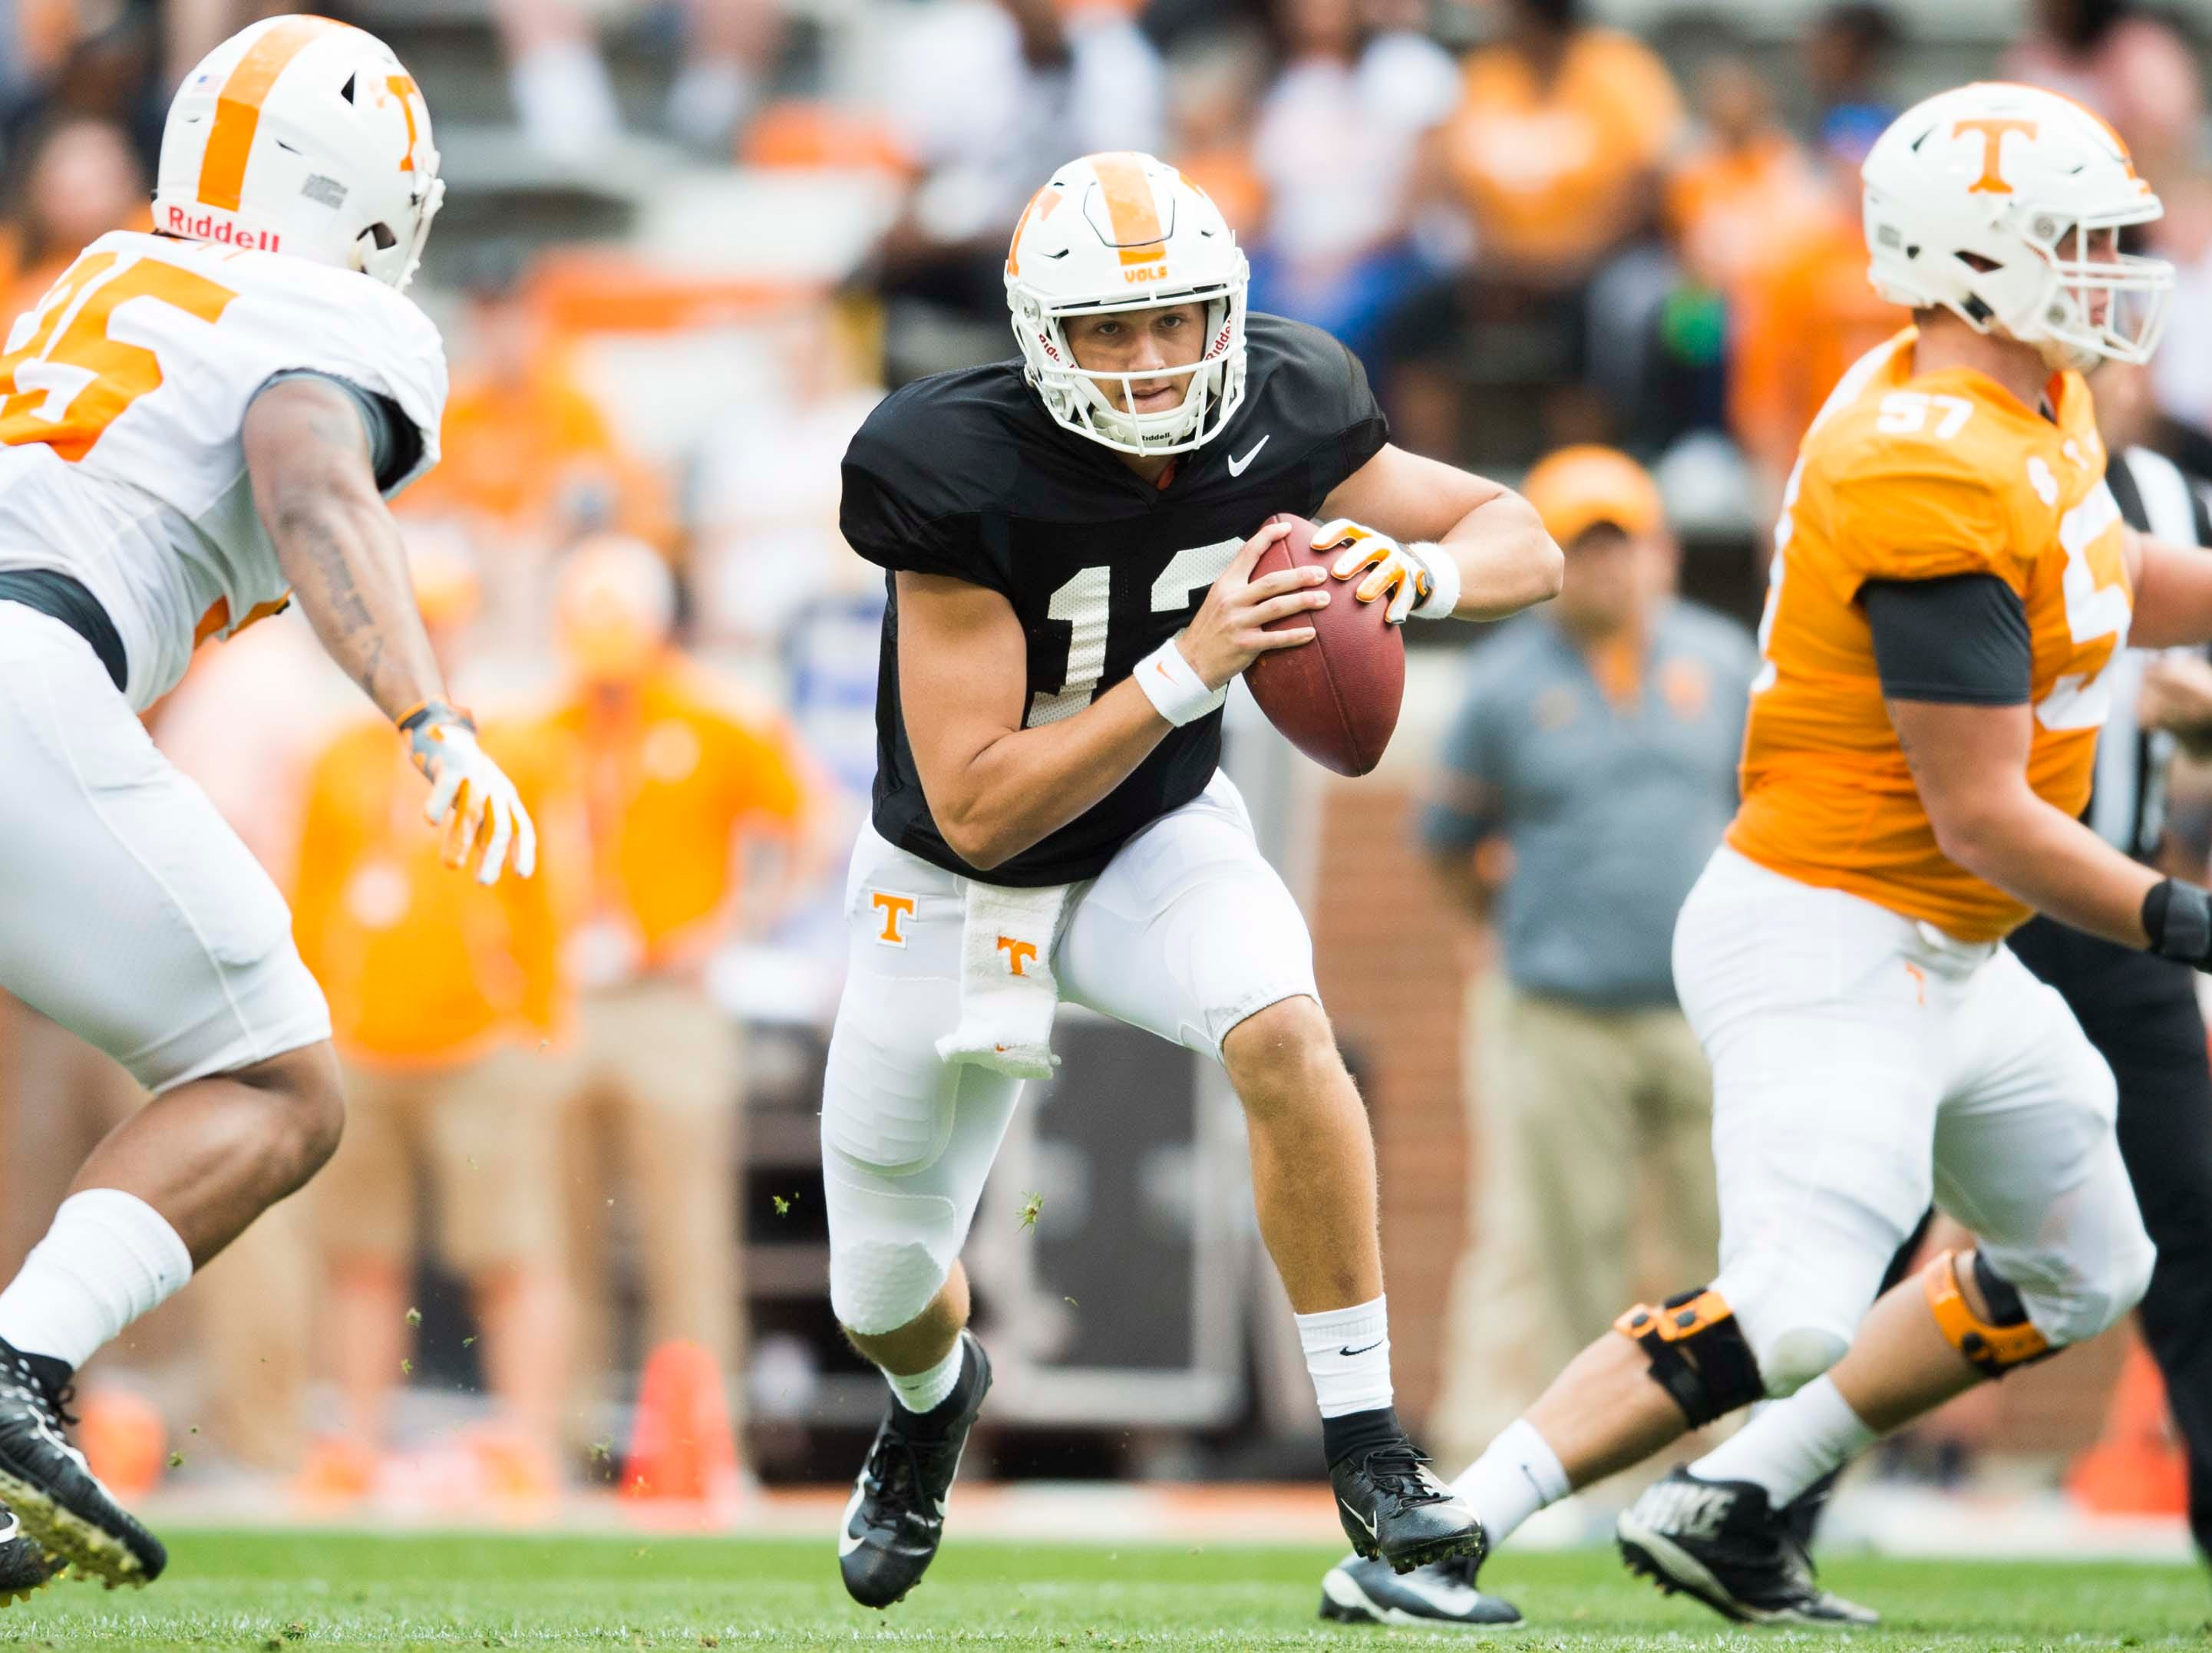 Tennessee quarterback J.T. Shrout (12) runs the ball during the Vols spring game in Neyland Stadium in Knoxville Saturday, April 13, 2019.